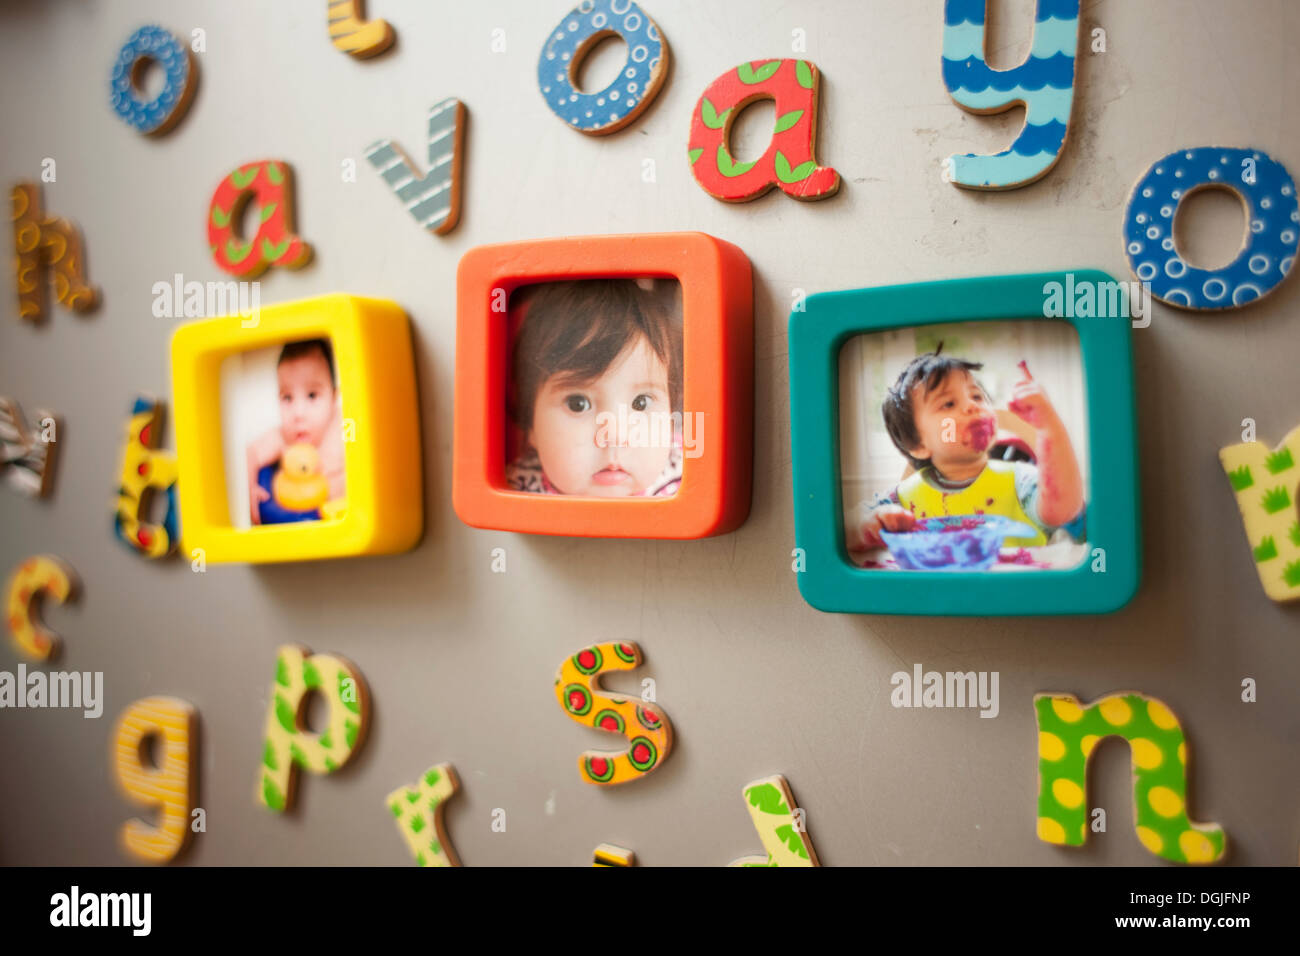 Childhood photographs and picture on wall - Stock Image